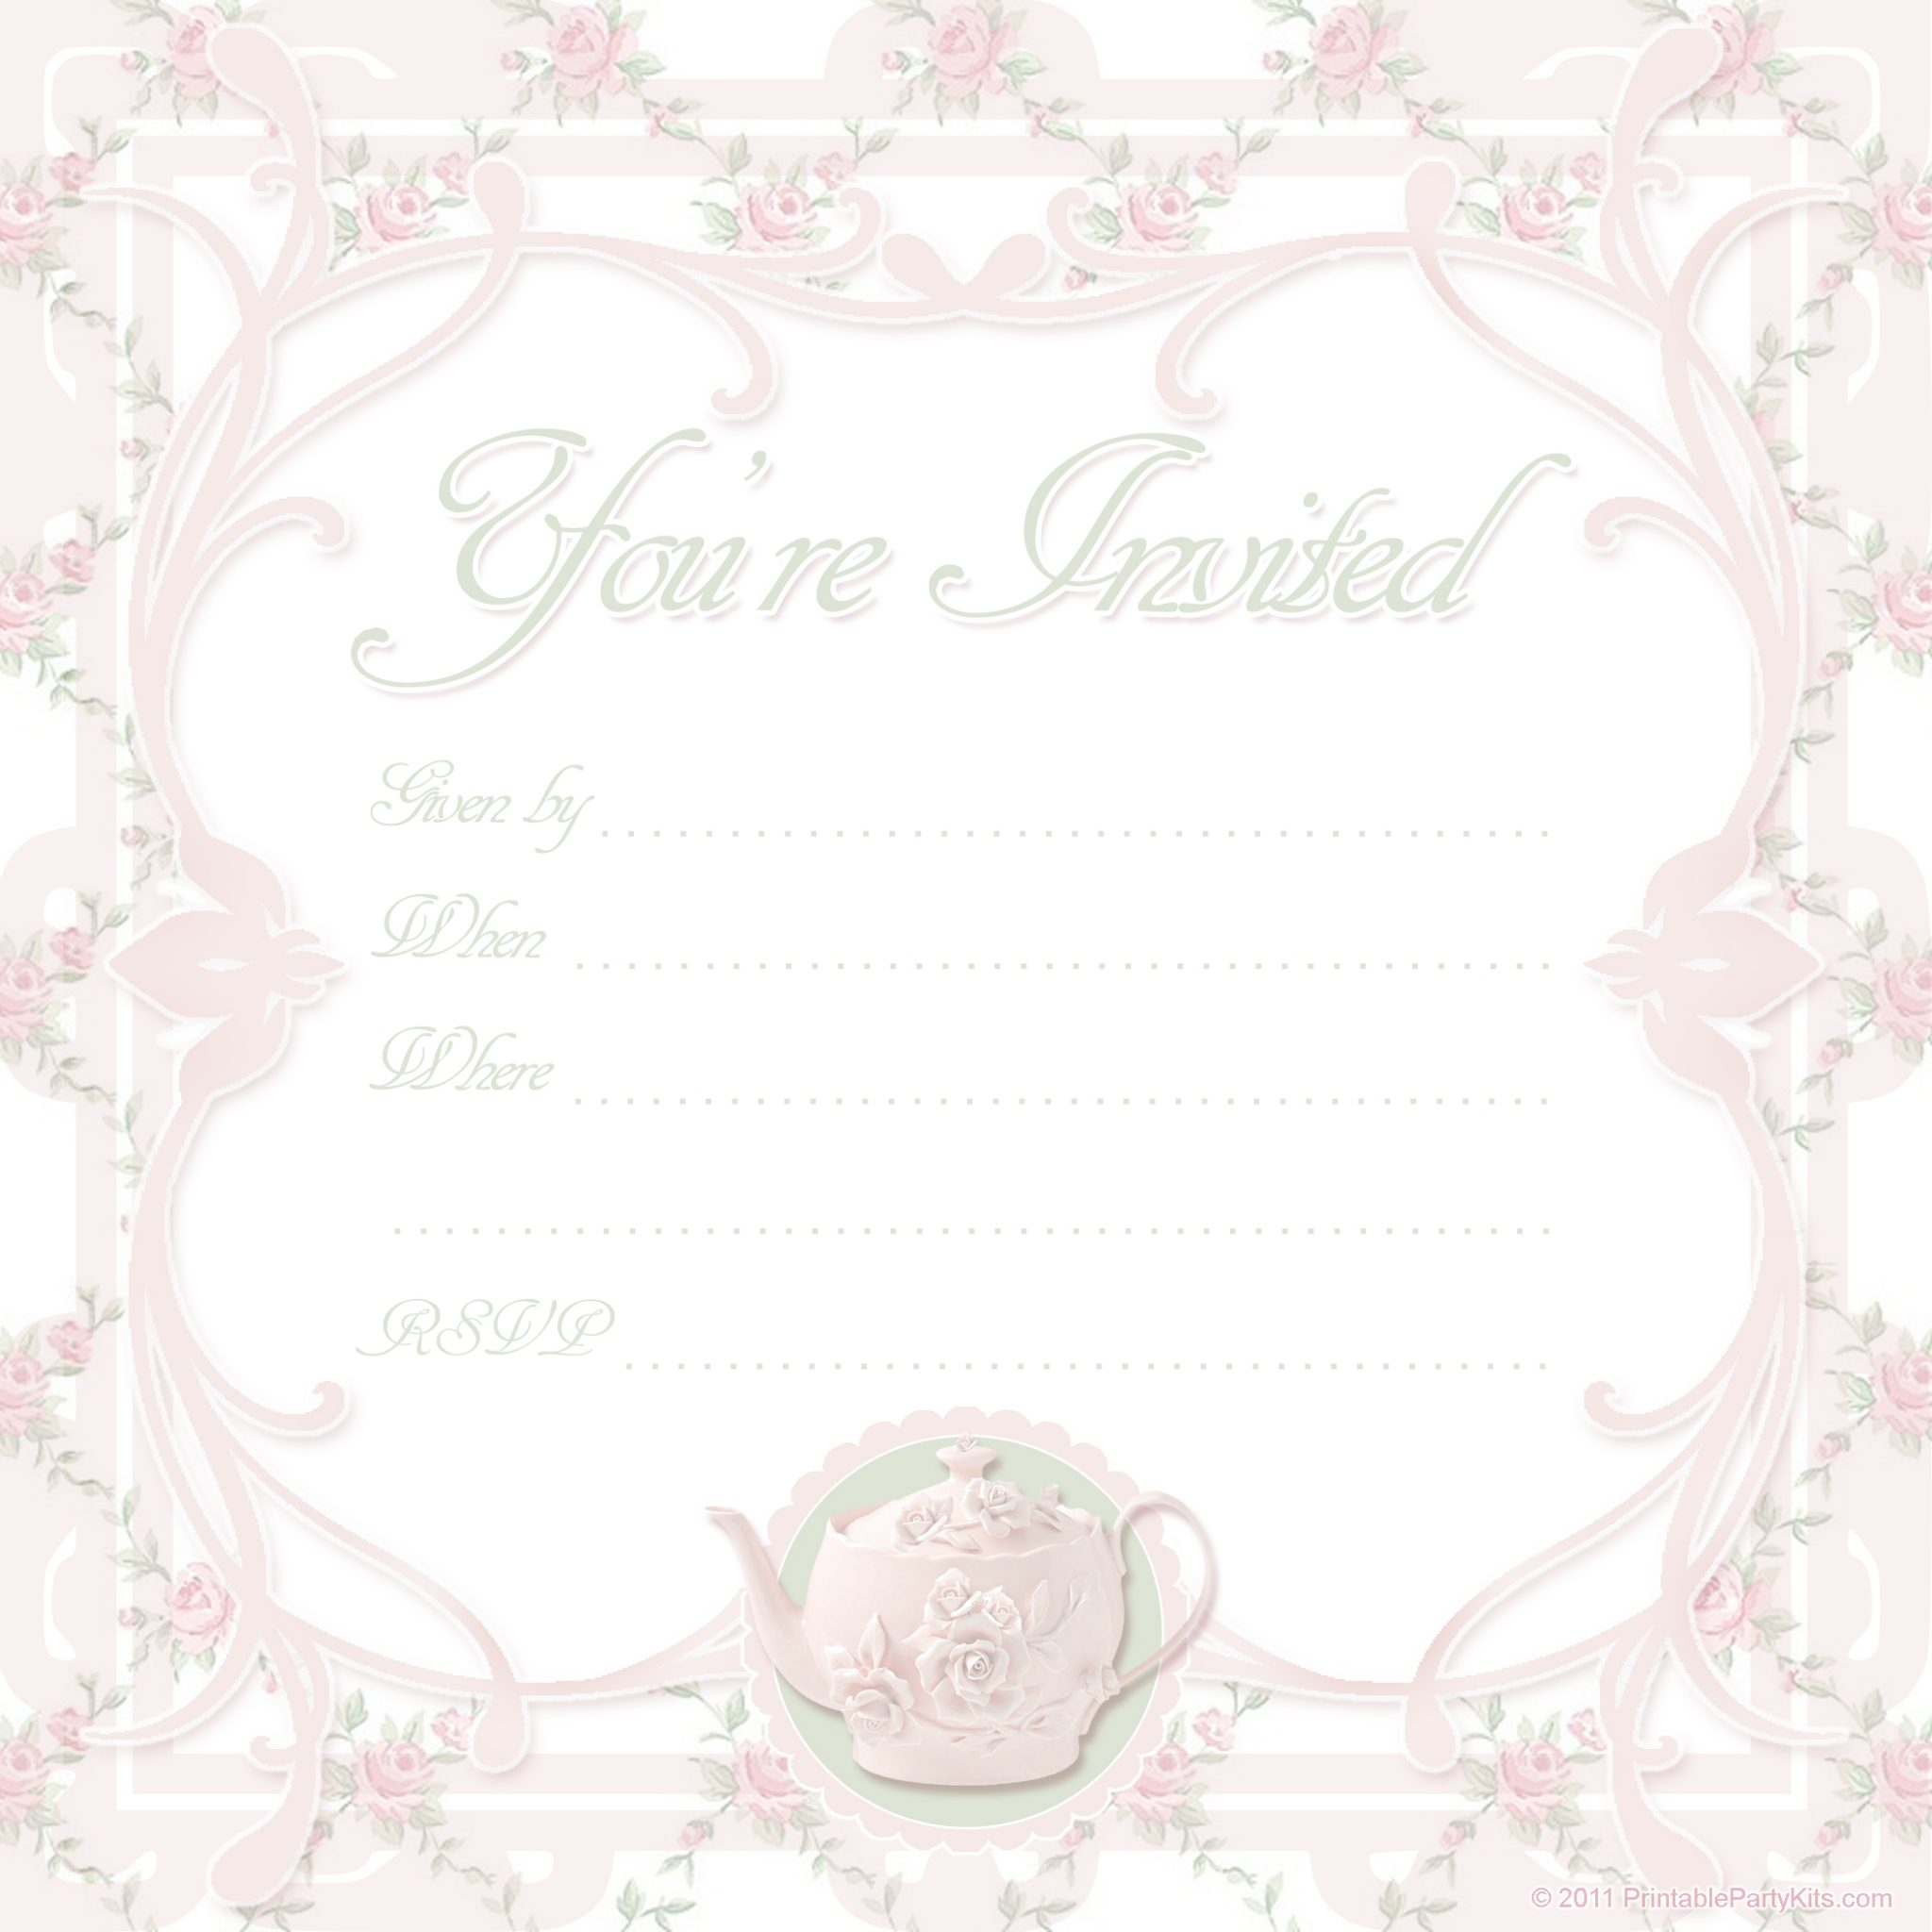 Free Printable Tea Party Invite Template Printable Party Kits - Tea party invitation template free